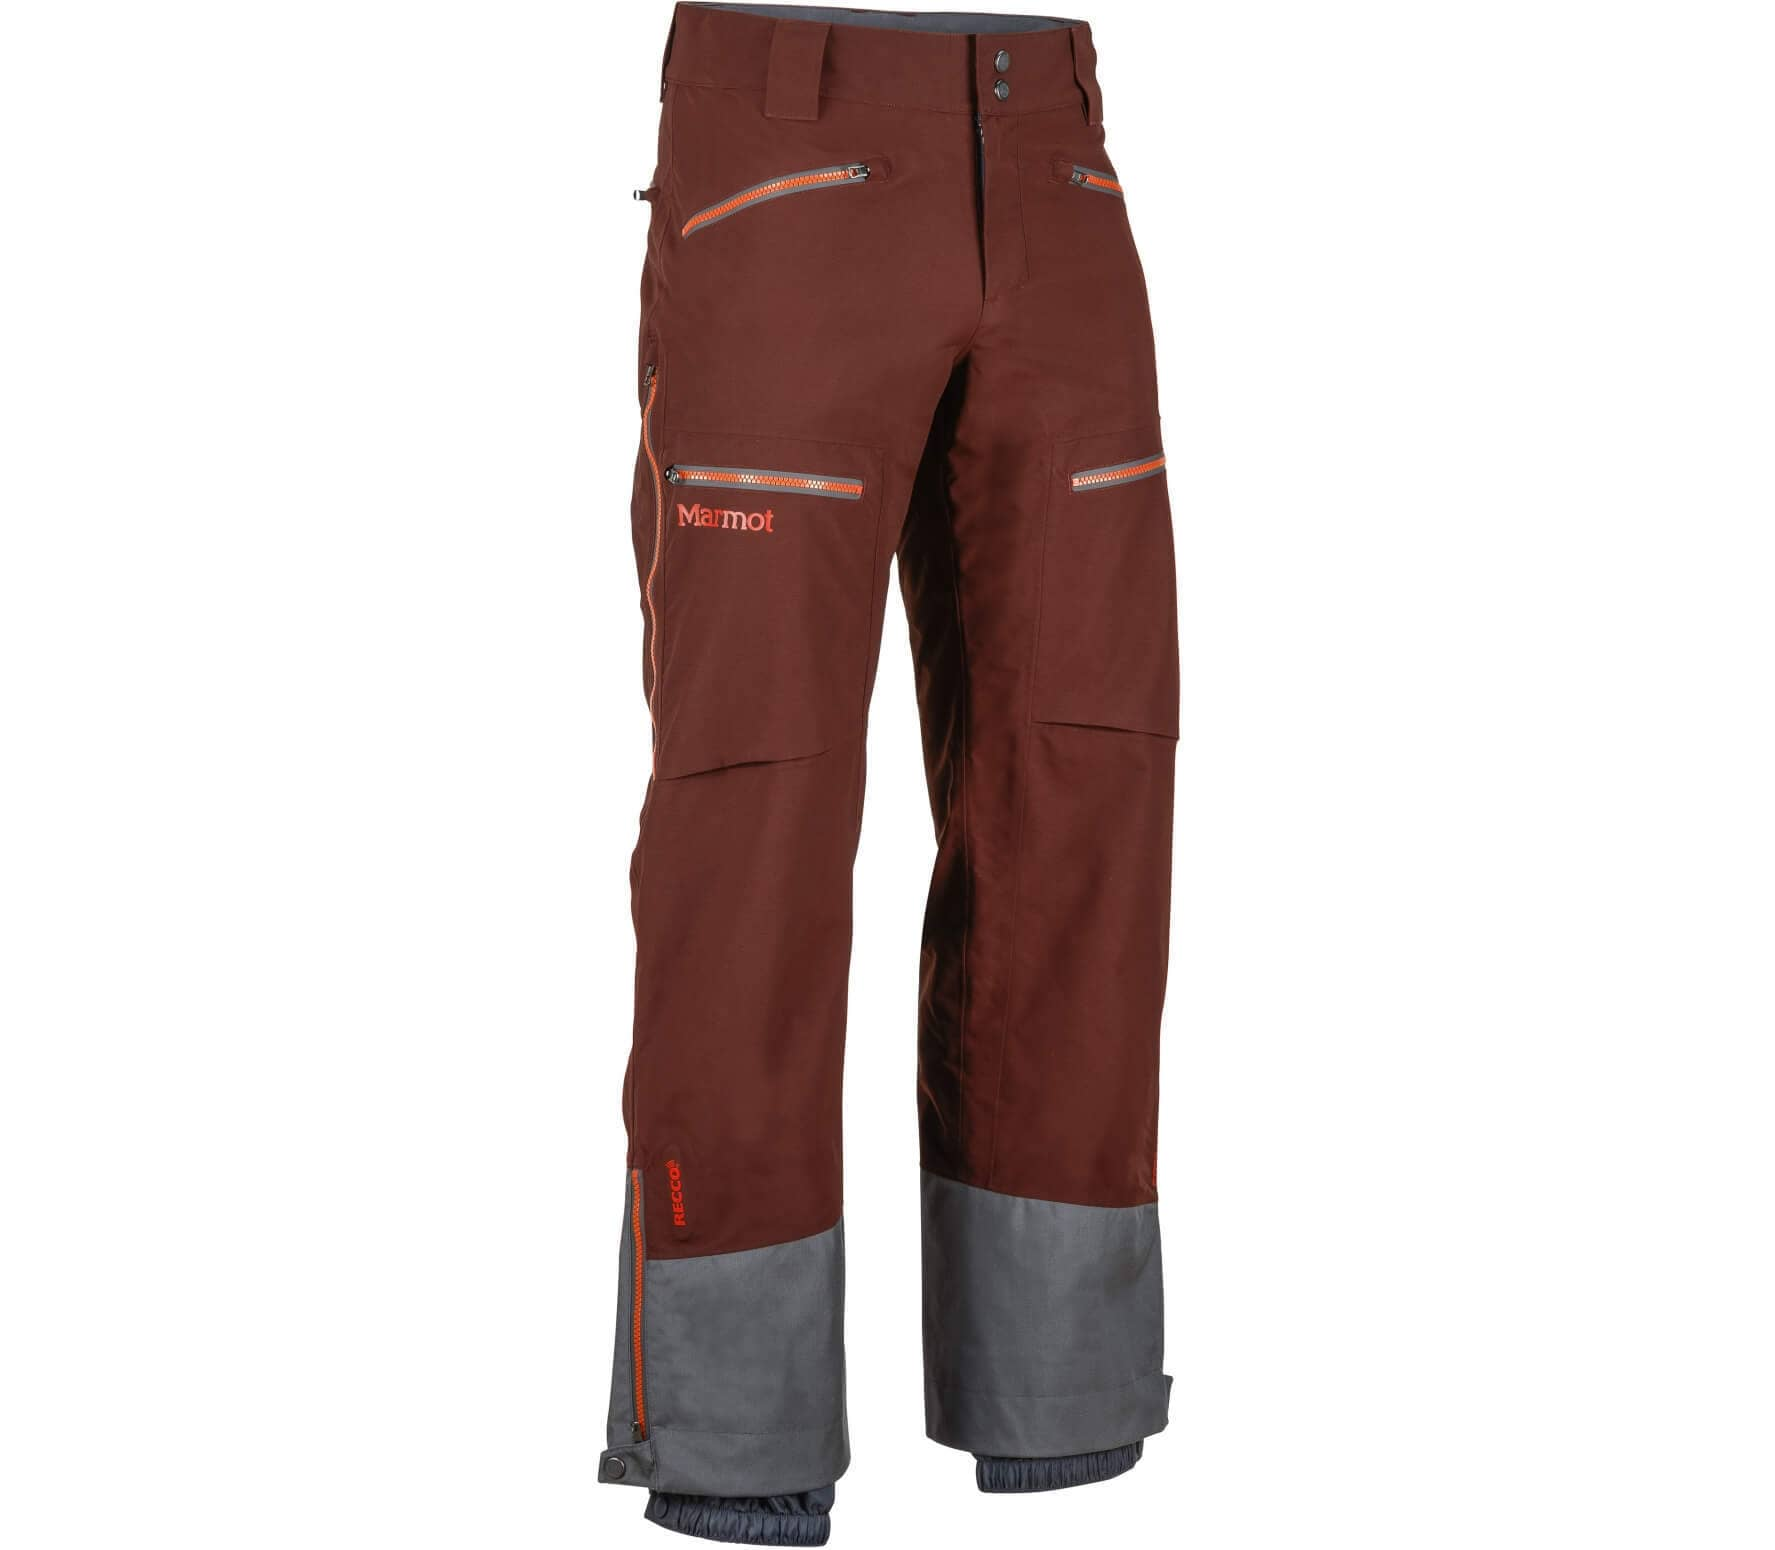 marmot freerider herr ka skidor pants brun gr handla online p keller sports. Black Bedroom Furniture Sets. Home Design Ideas